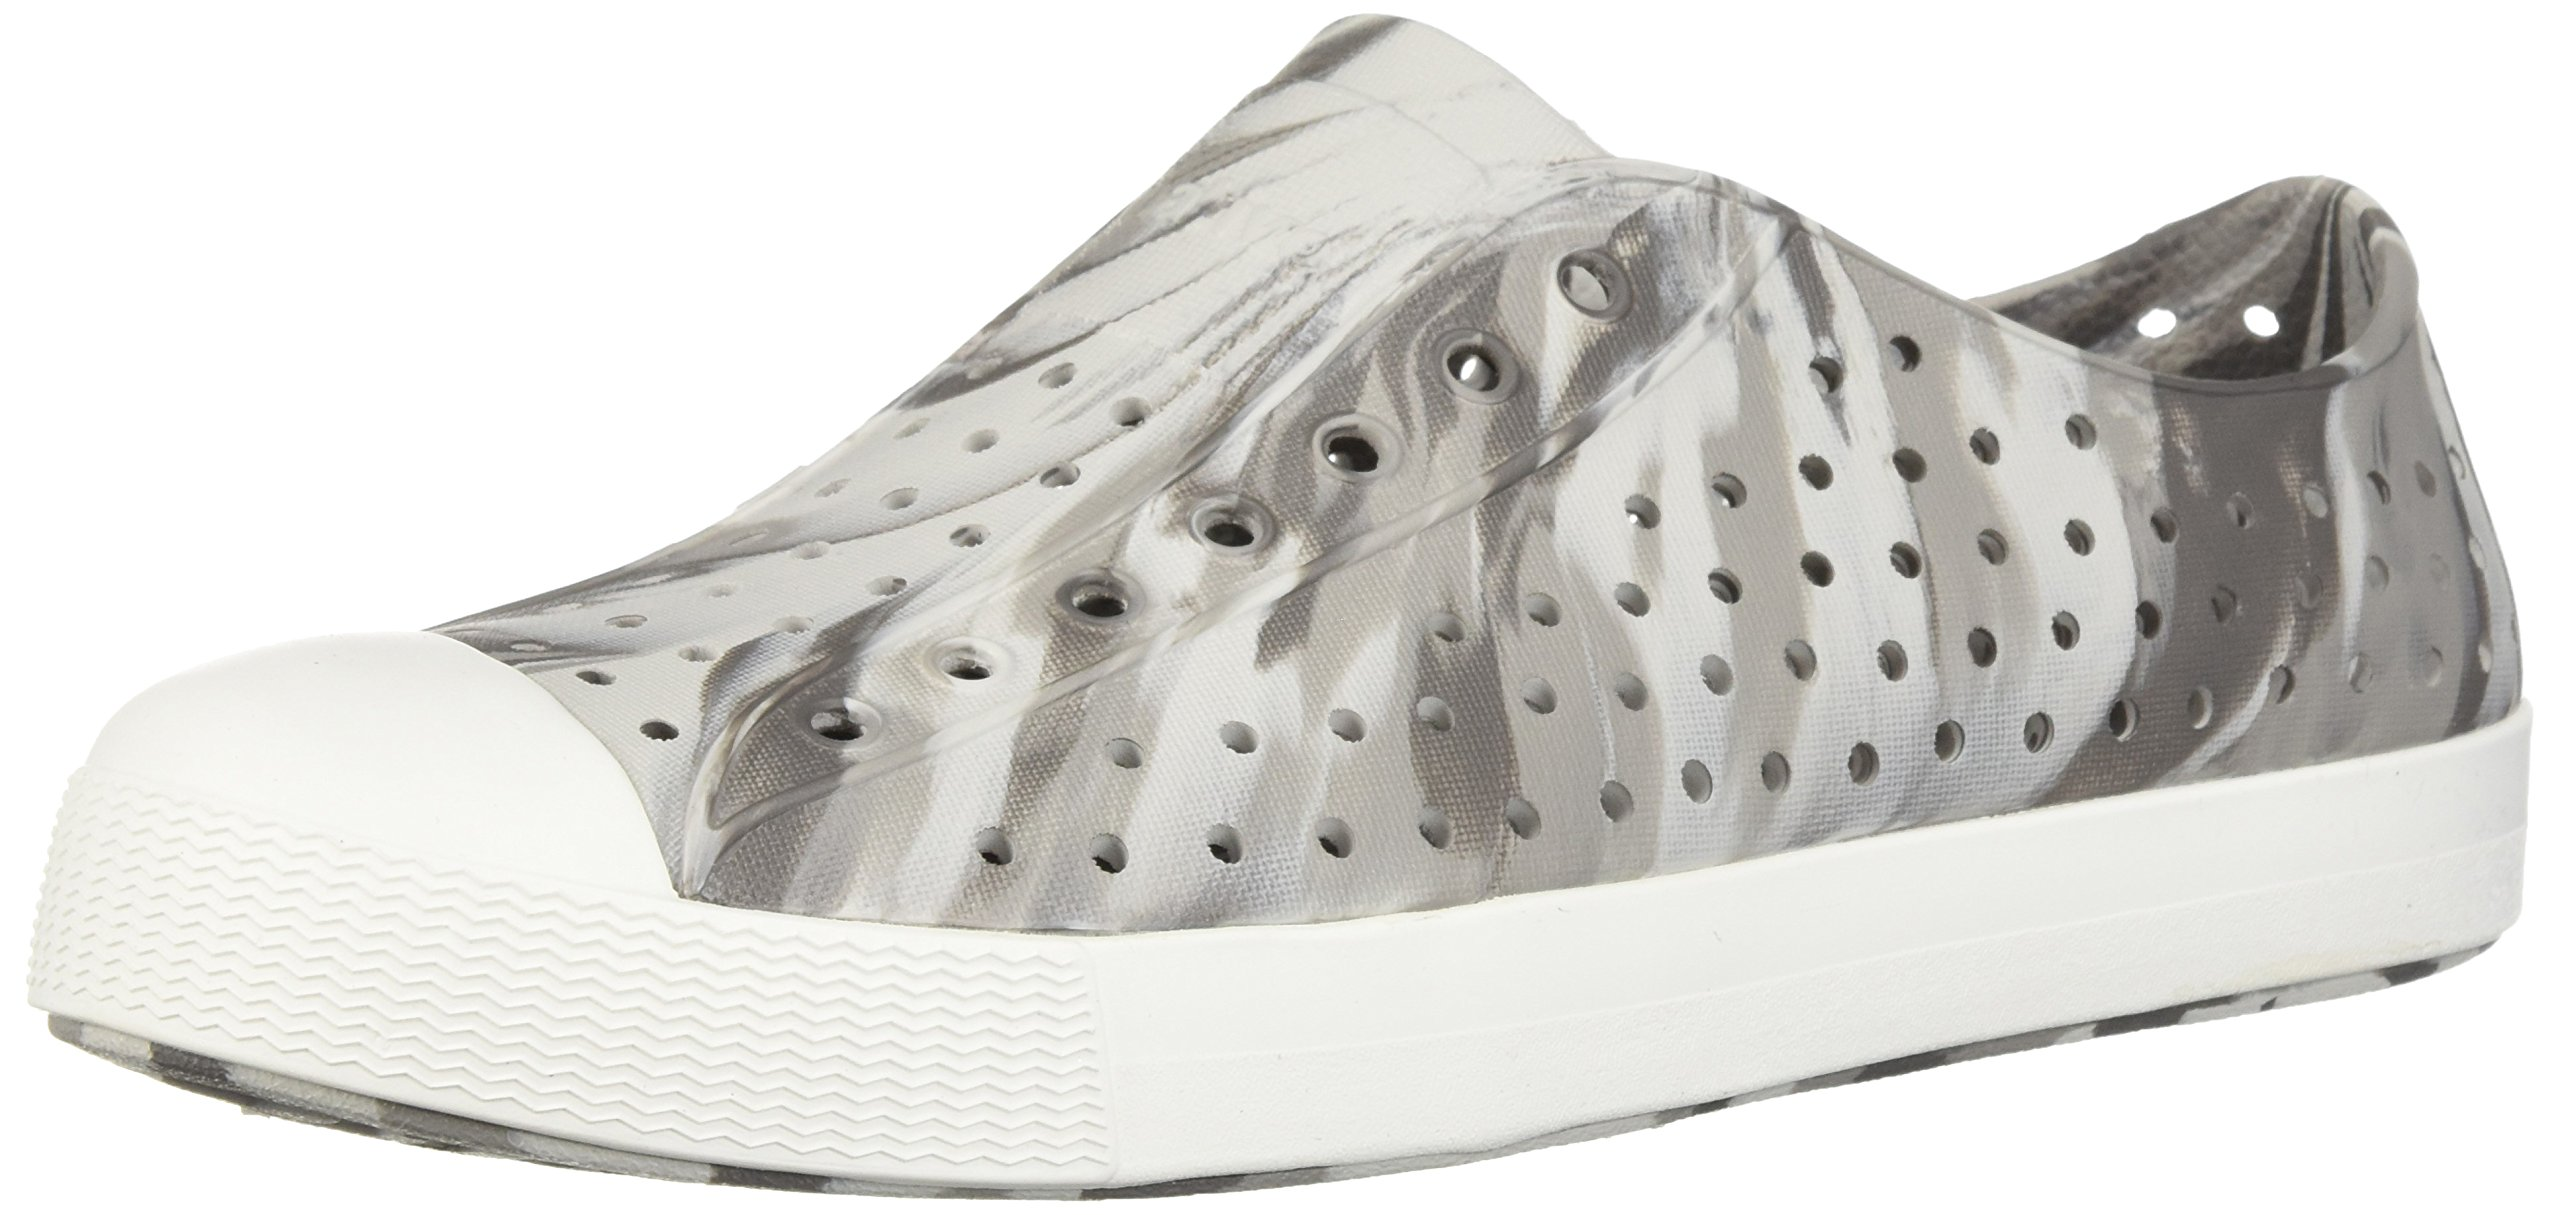 Native Kids Marbled Jefferson Water Proof Shoes, Dublin Grey/Shell White/Marbled, 5 Medium US Big Kid